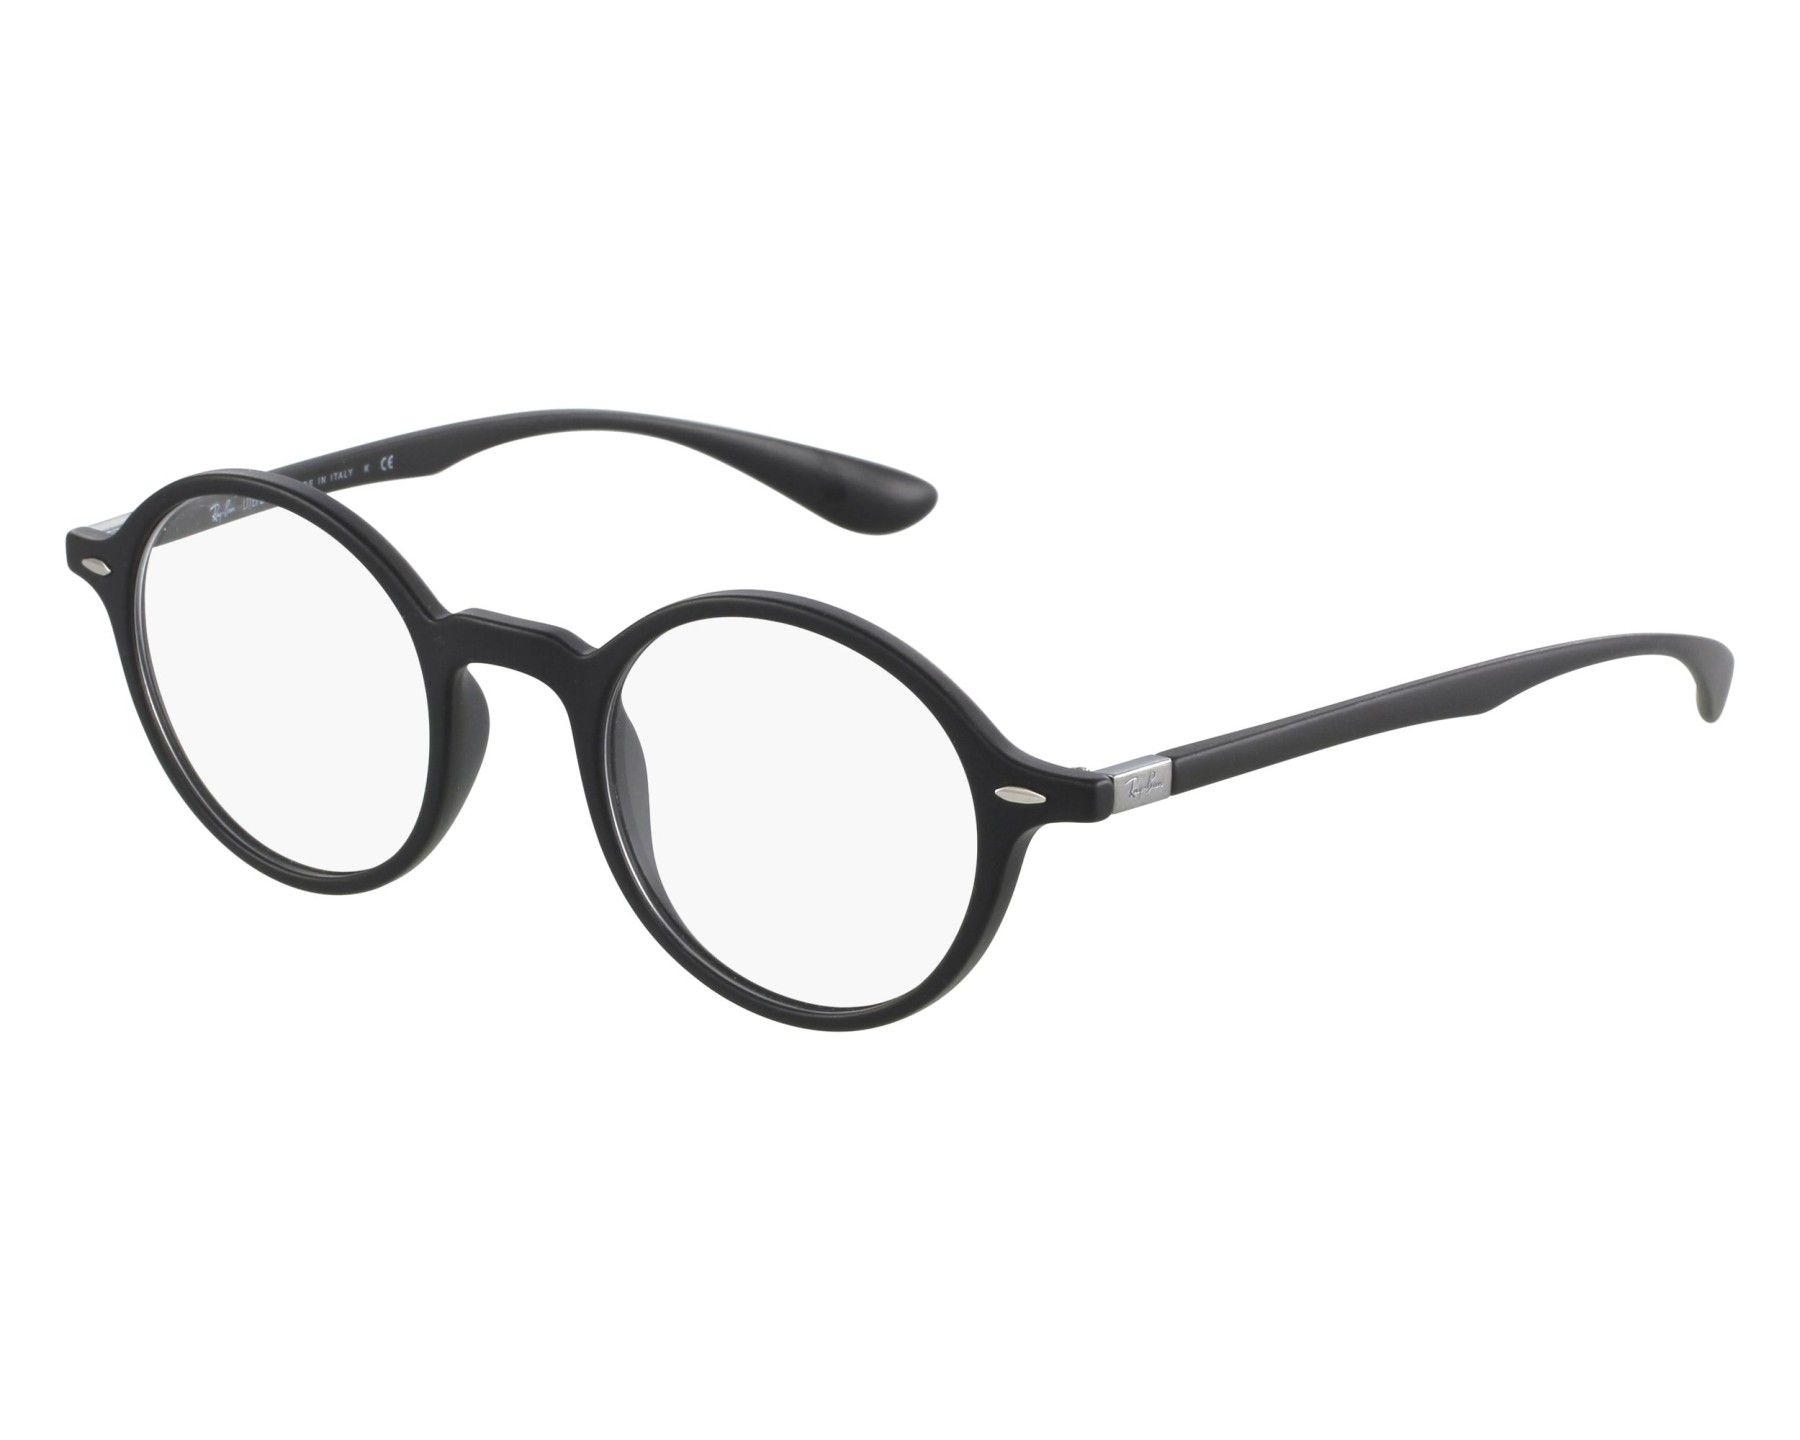 f702ef5875d80 eyeglasses Ray-Ban RX-7069 5204 43-22 Black front view